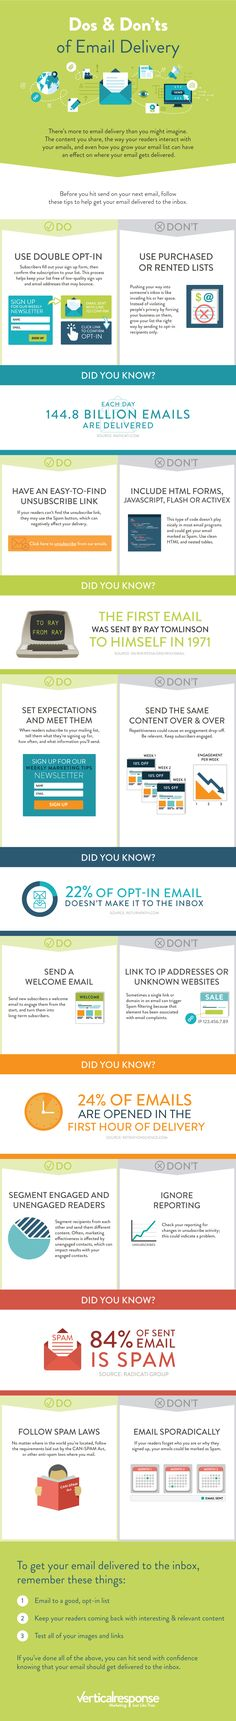 Very Good Advice on Emails for Your Business! The Dos and Don'ts of Email Delivery #infographic #Marketing #EmailMarketing